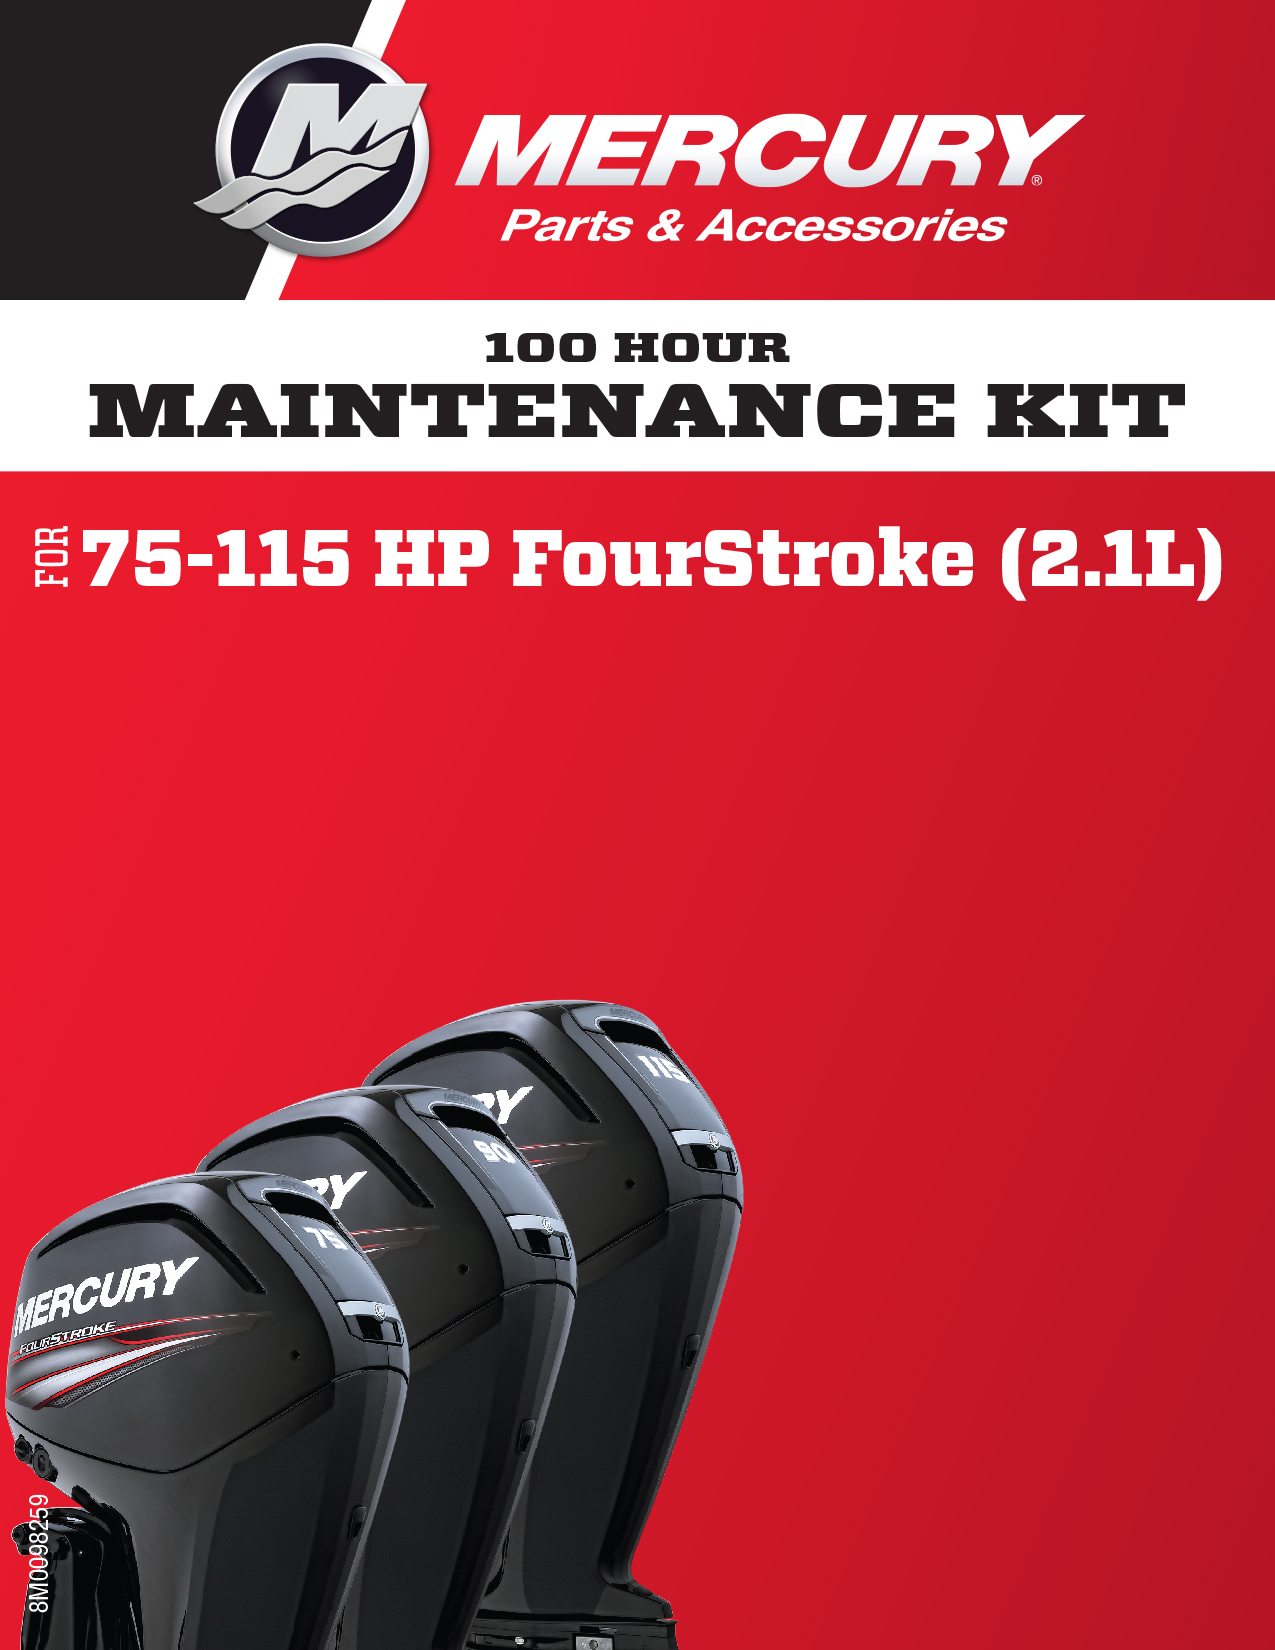 75-115 HP FourStroke (2.1L) 100-Hour Maintenance Kit | 8M0097854